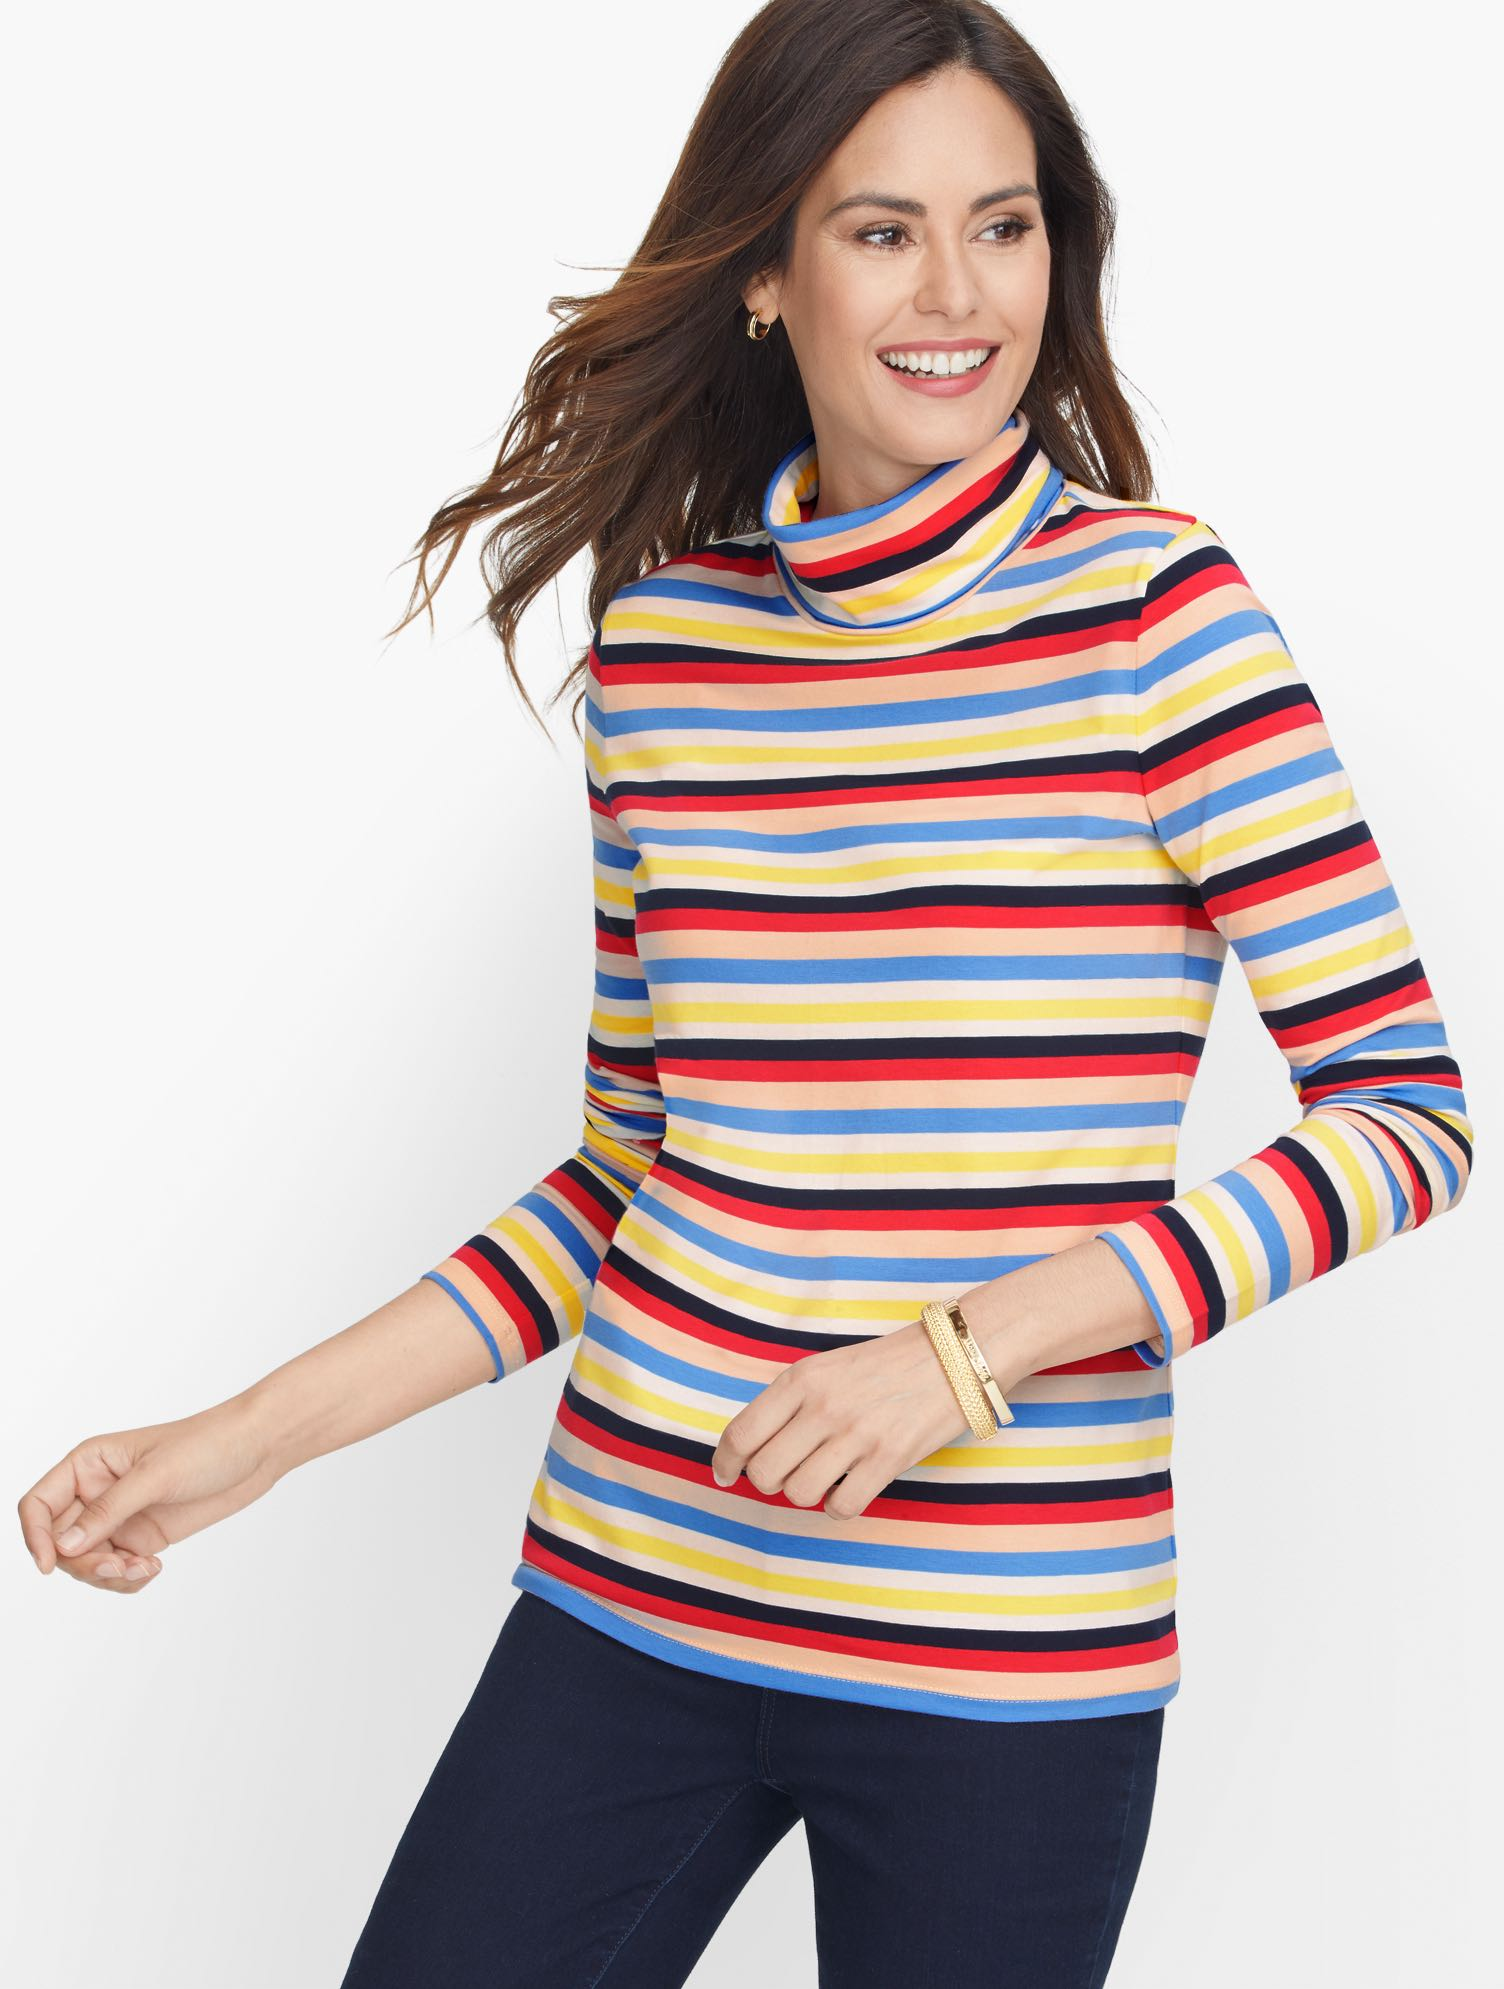 Our coziest turtleneck. Colorfully striped. Crafted from pure cotton with a touch of spandex. Features Neckline: TurtleSleeve length: LongHits: At hipImported Fit: Misses: 25 inches, Petite: 24 inches, Plus: 27 inches, Plus Petite:25.5 inches Material: 95% Cotton, 5% Spandex Care: Machine Wash, Tumble Dry Cotton Turtleneck - Multi Stripe - Ivory - 3X Talbots